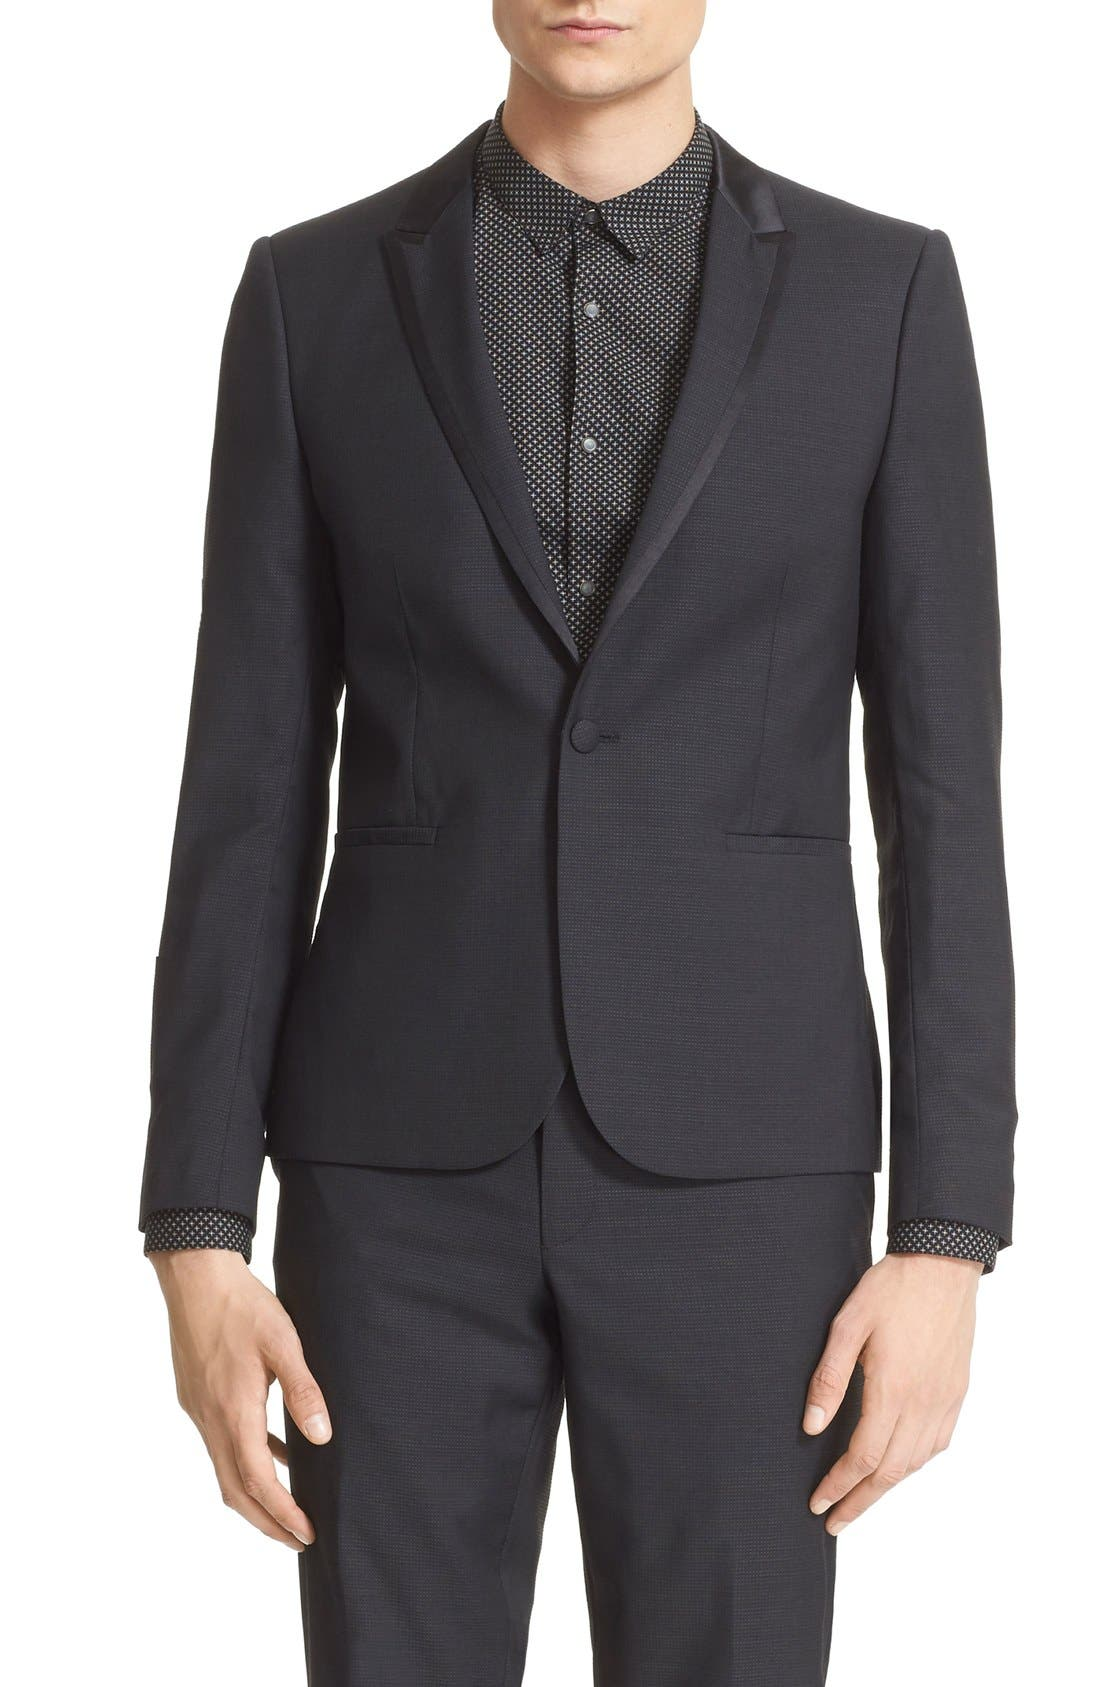 Main Image - The Kooples 'Netting' Trim Fit Suit Jacket